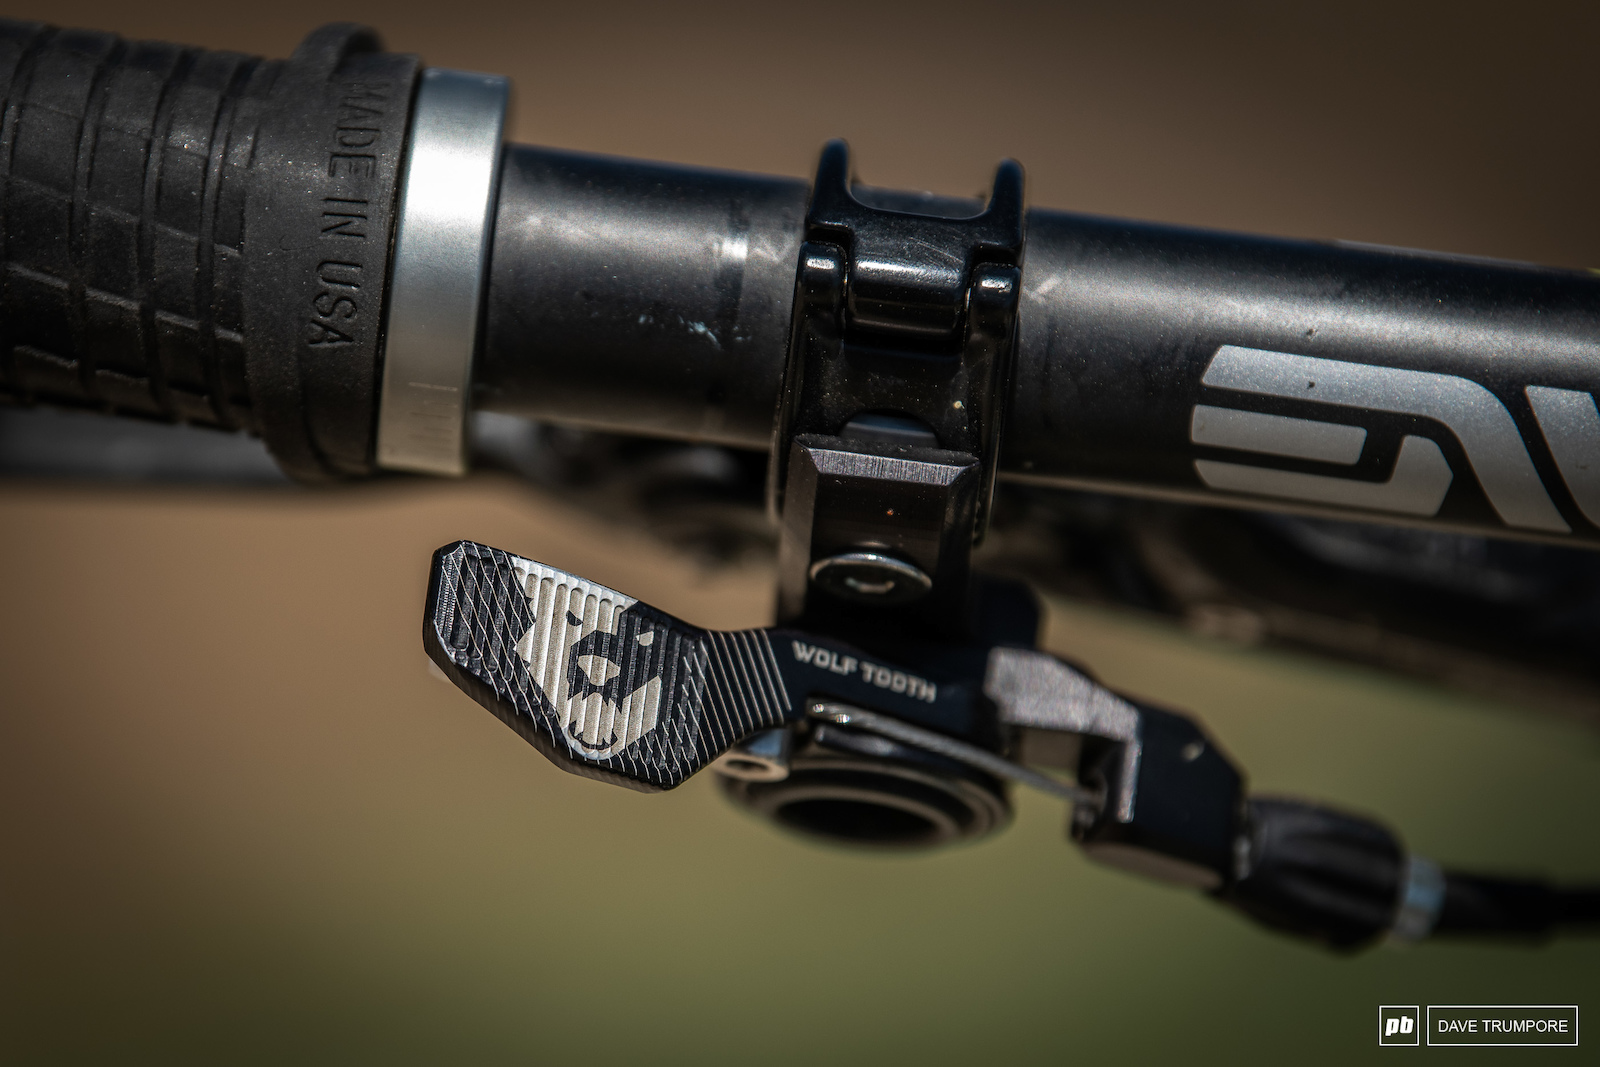 A Wolf Tooth lever integrates perfectly into SRAM brakes and control the FOX Transfer post.